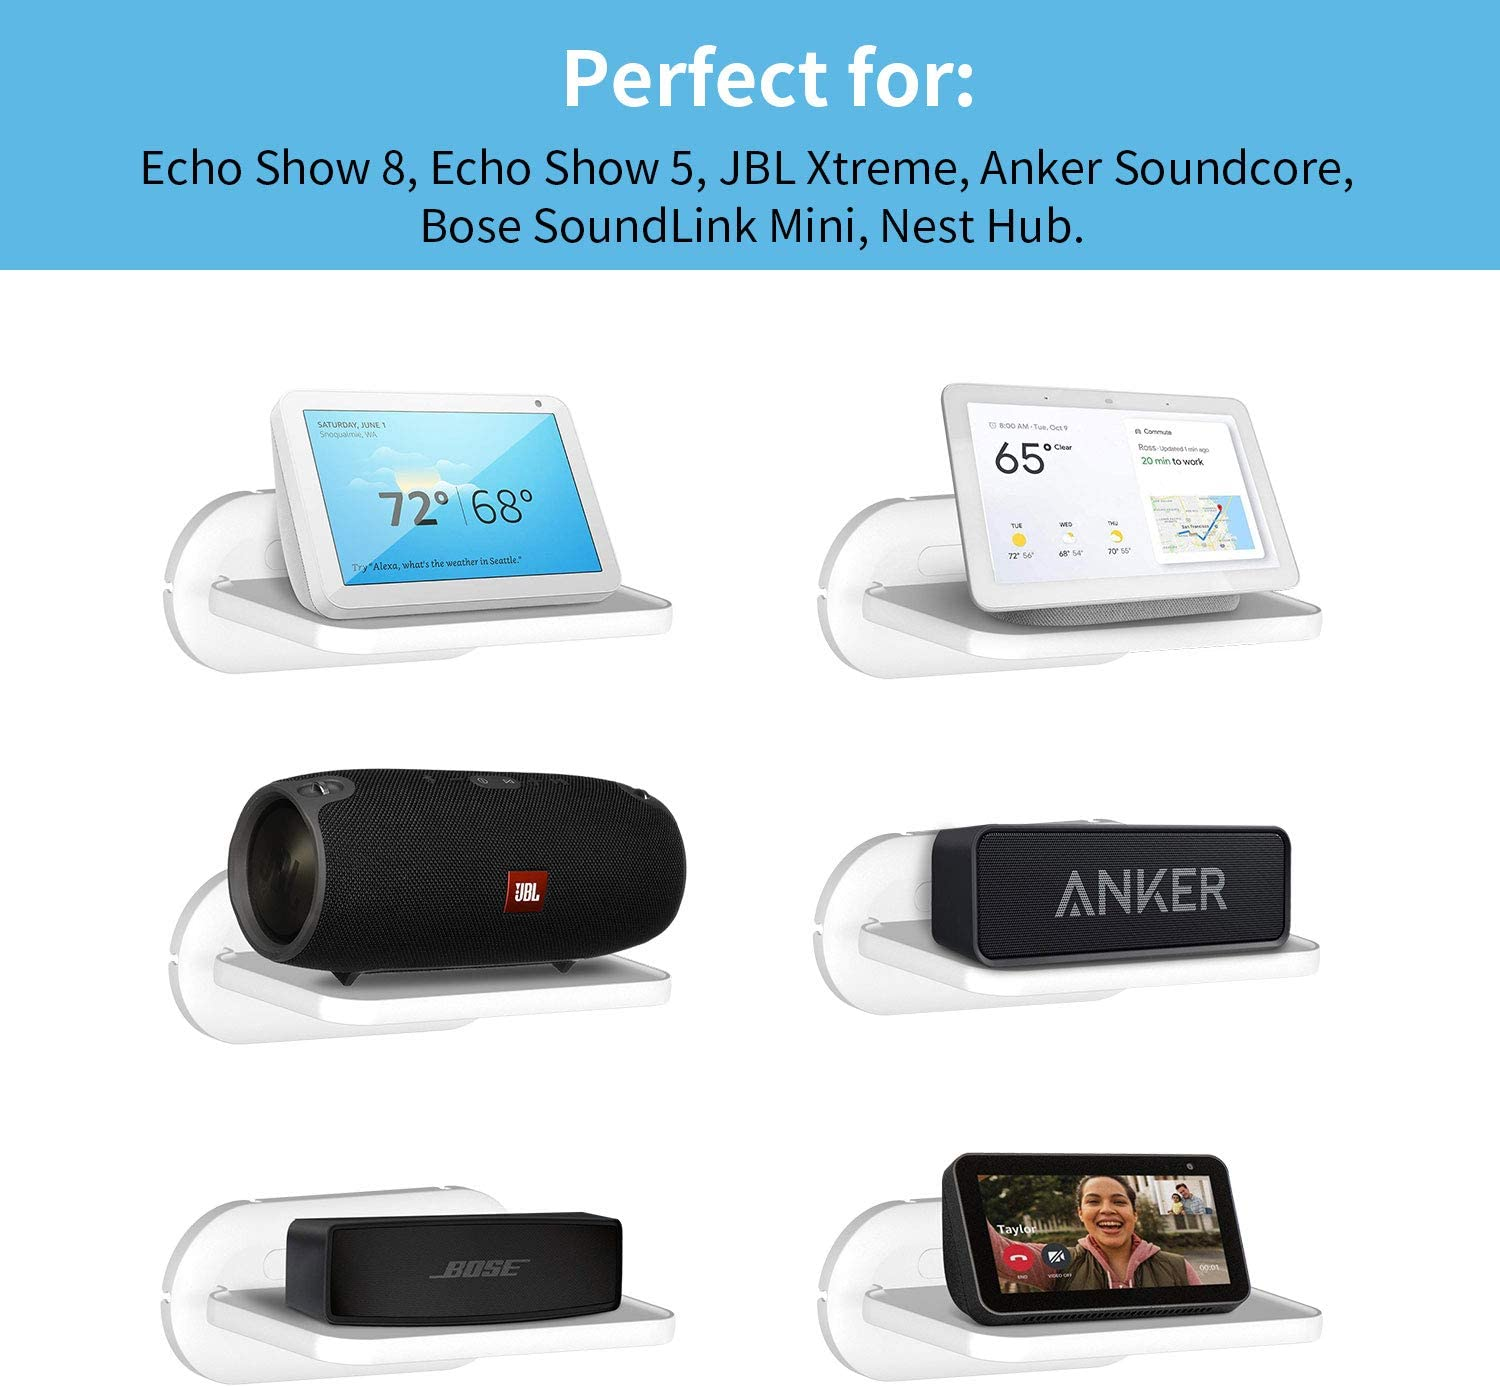 Cozycase Small Wall Shelf for Ech0 Show 8 // Show 5 JBL Flip and other Bluetooth speakers saving counter space in Bathroom Kitchen- White Floating Shelves for Google Nest Hub//Home Hub